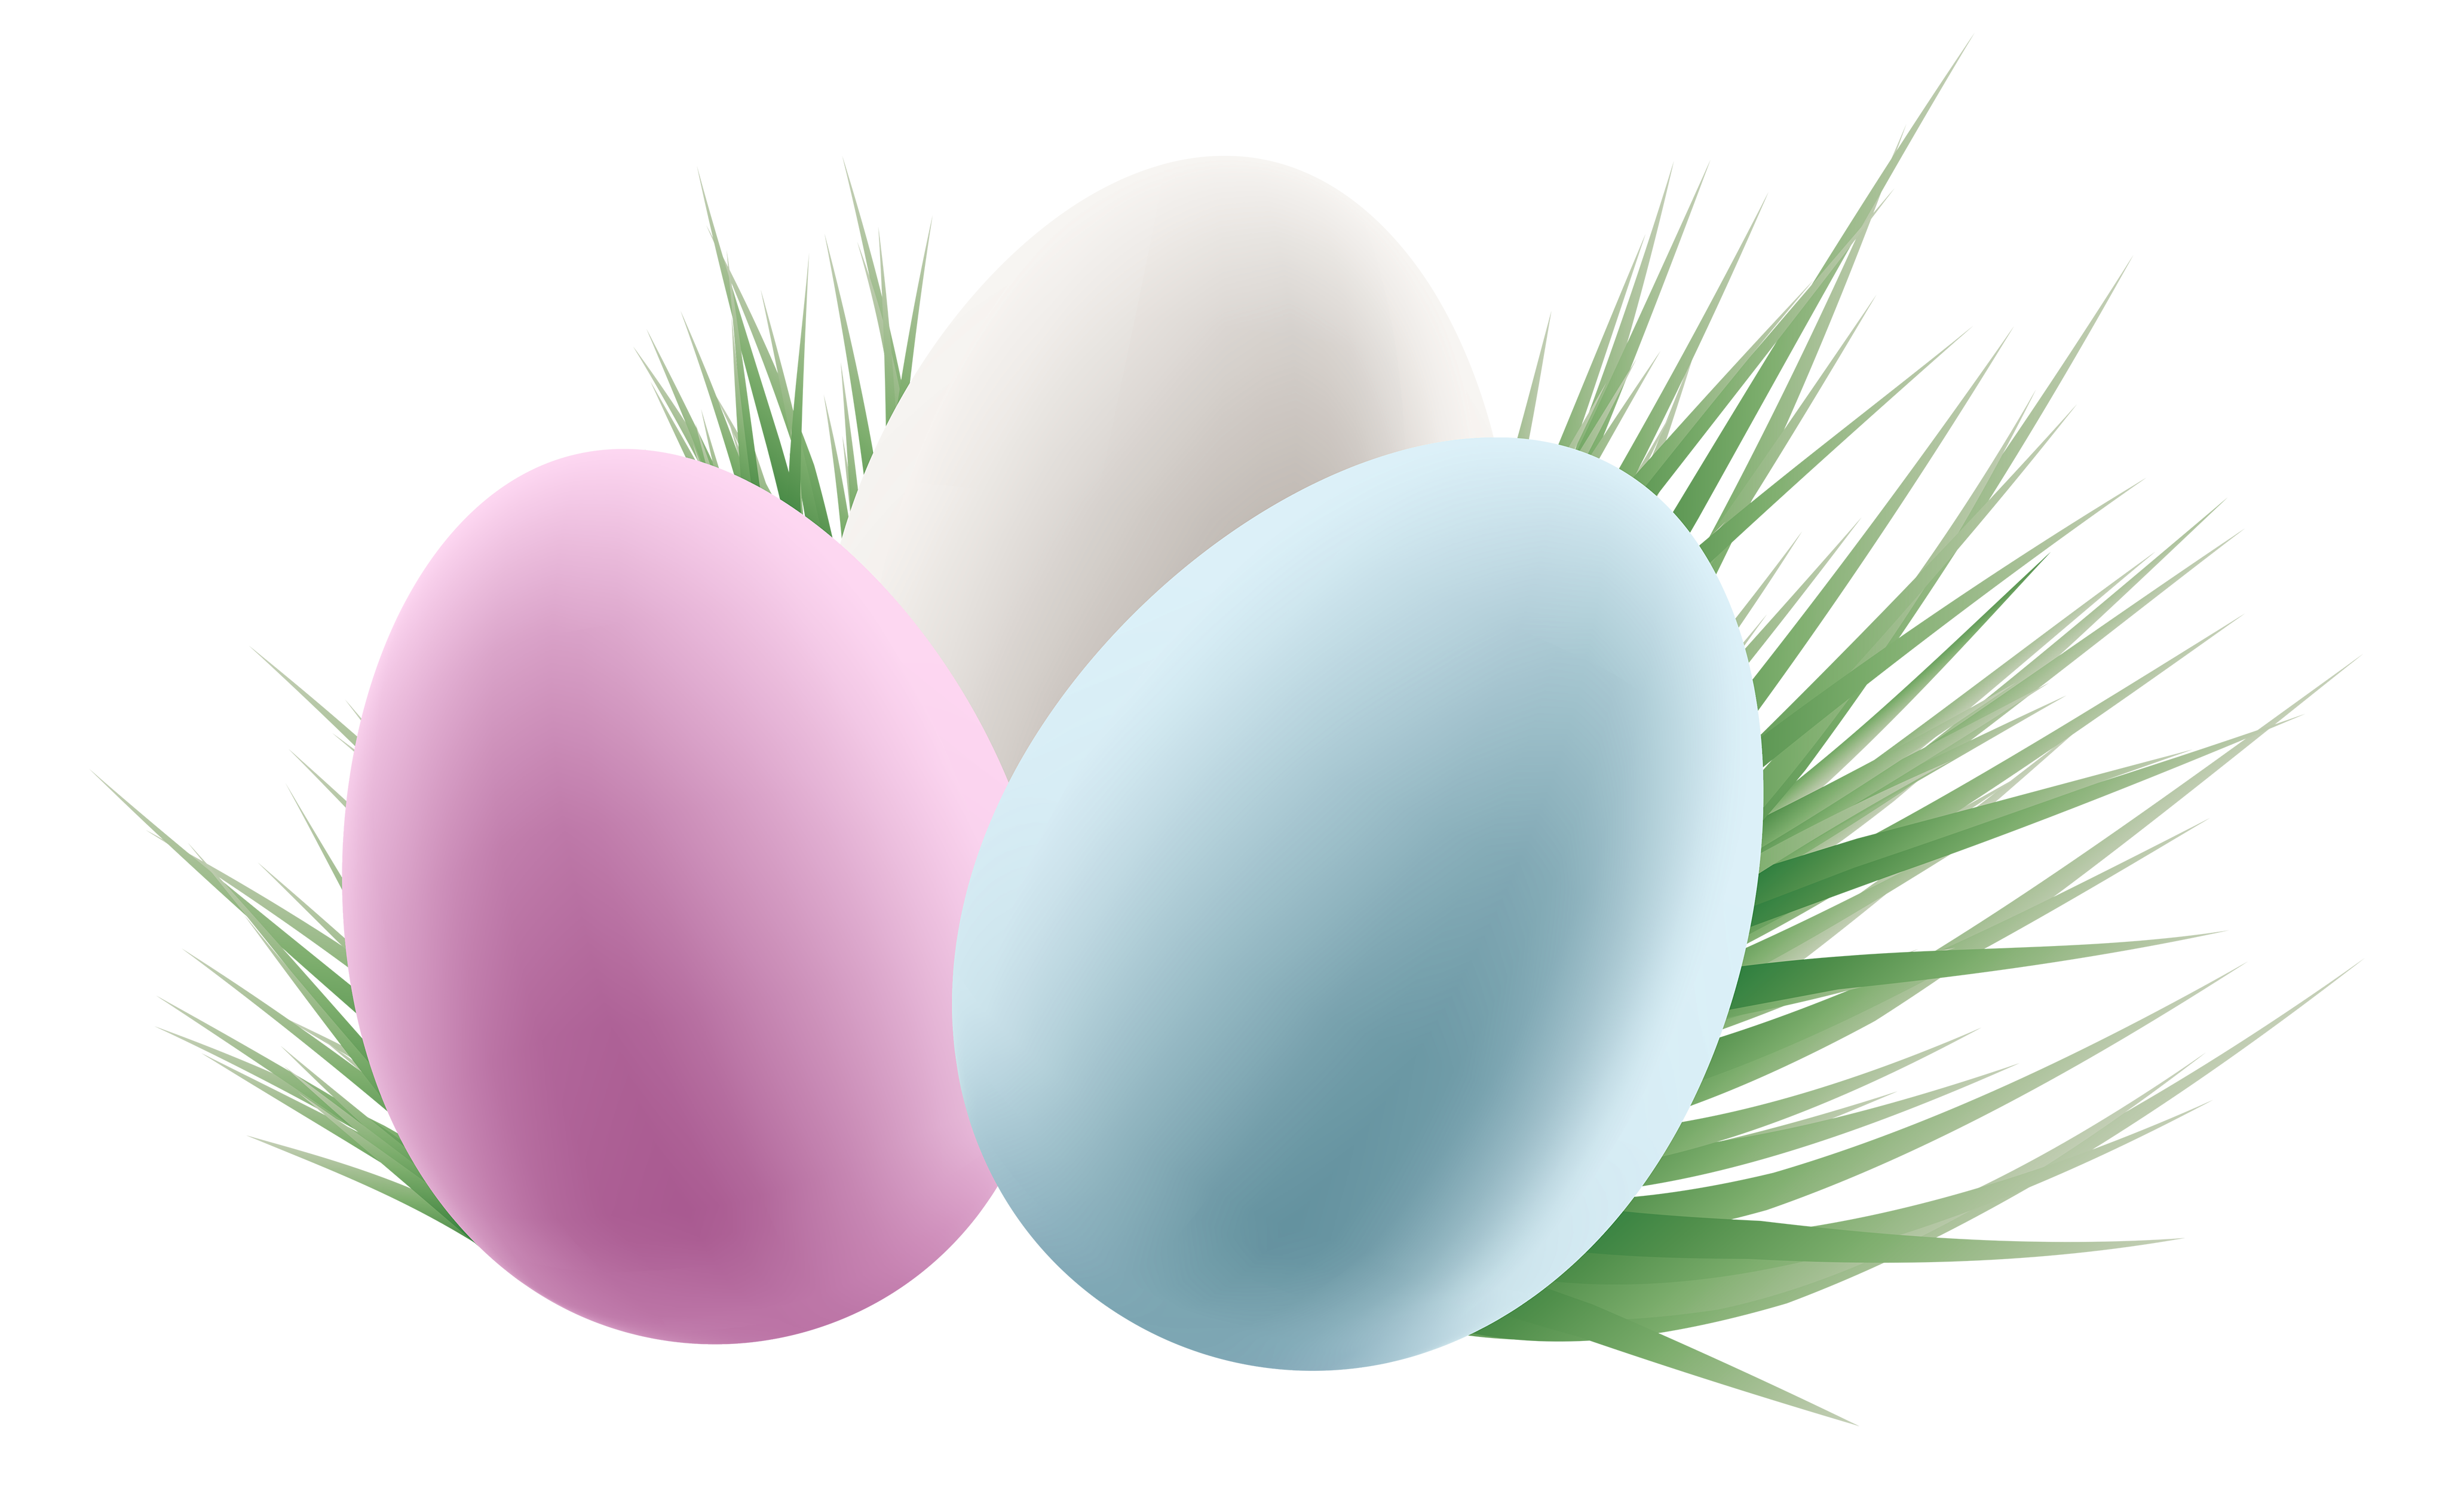 Free Easter Egg Transparent Background, Download Free Clip Art, Free.